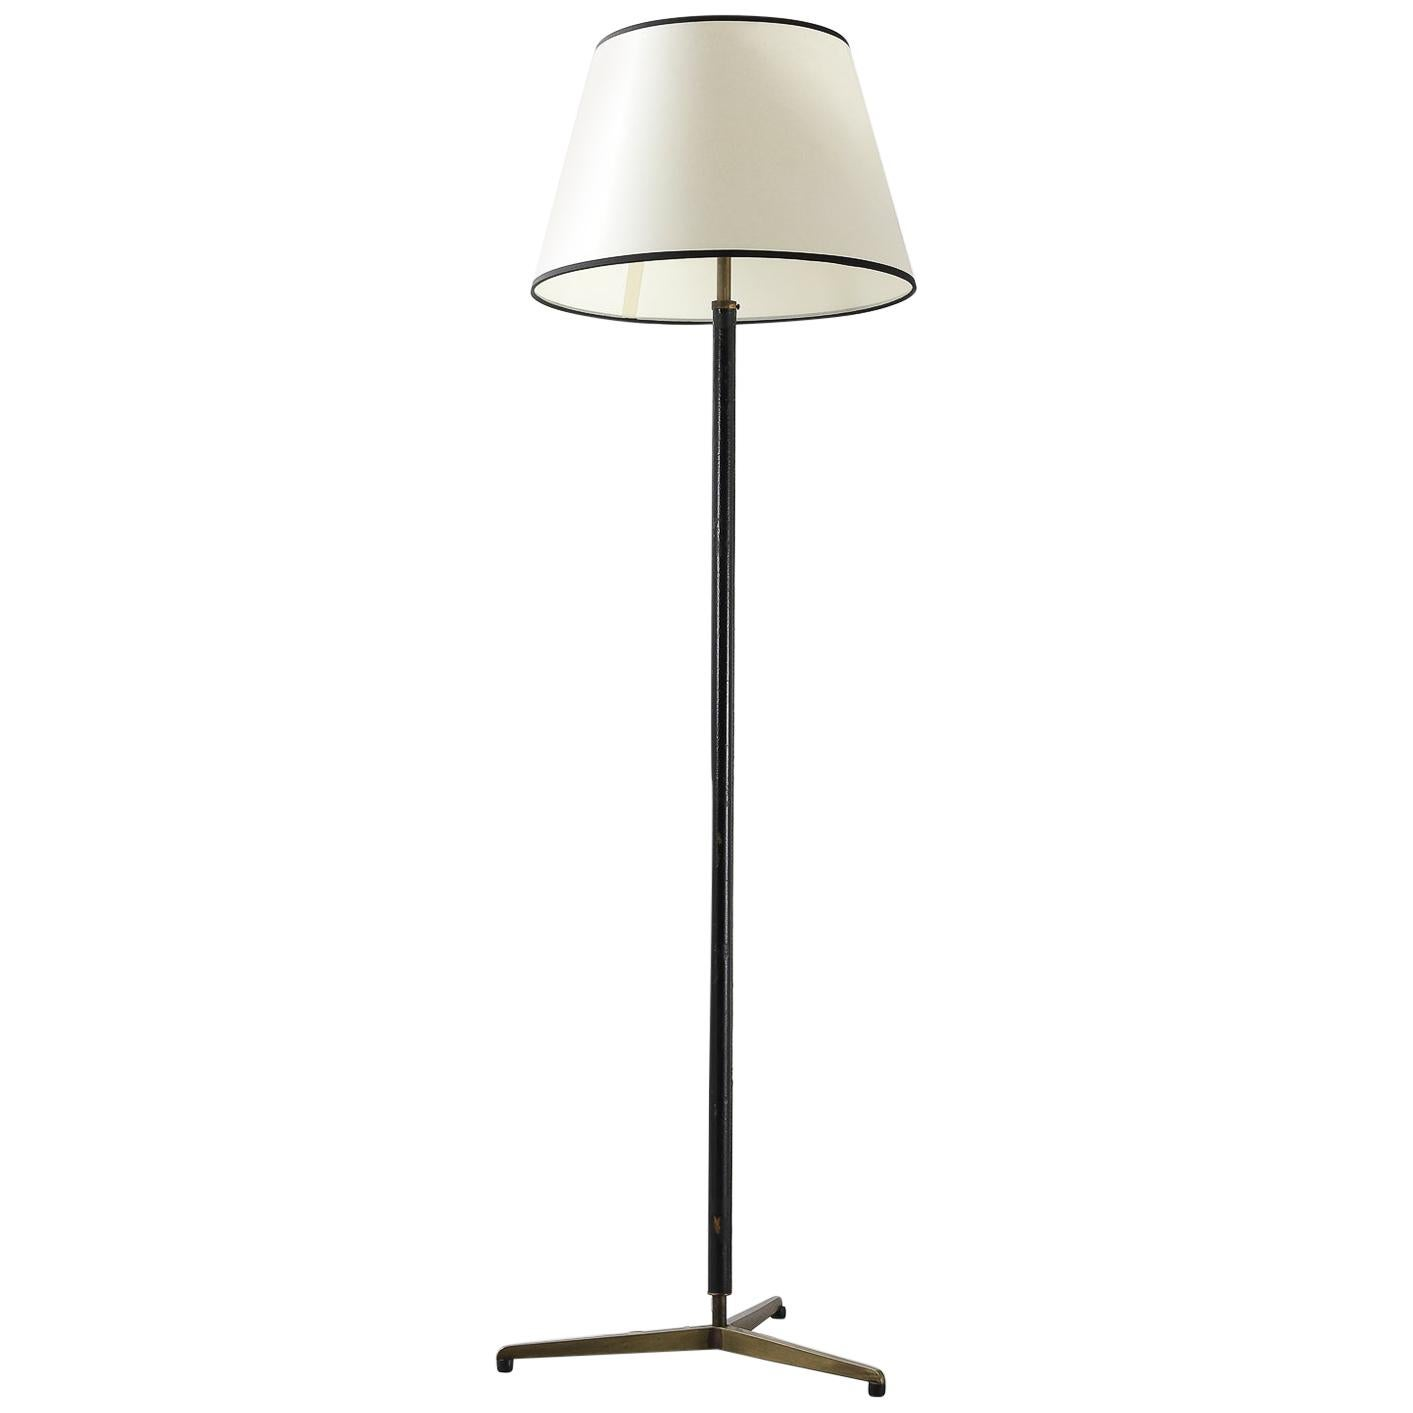 French Mid-Century Modern Hand Stitched Leather & Brass Floor Lamp Jacques Adnet